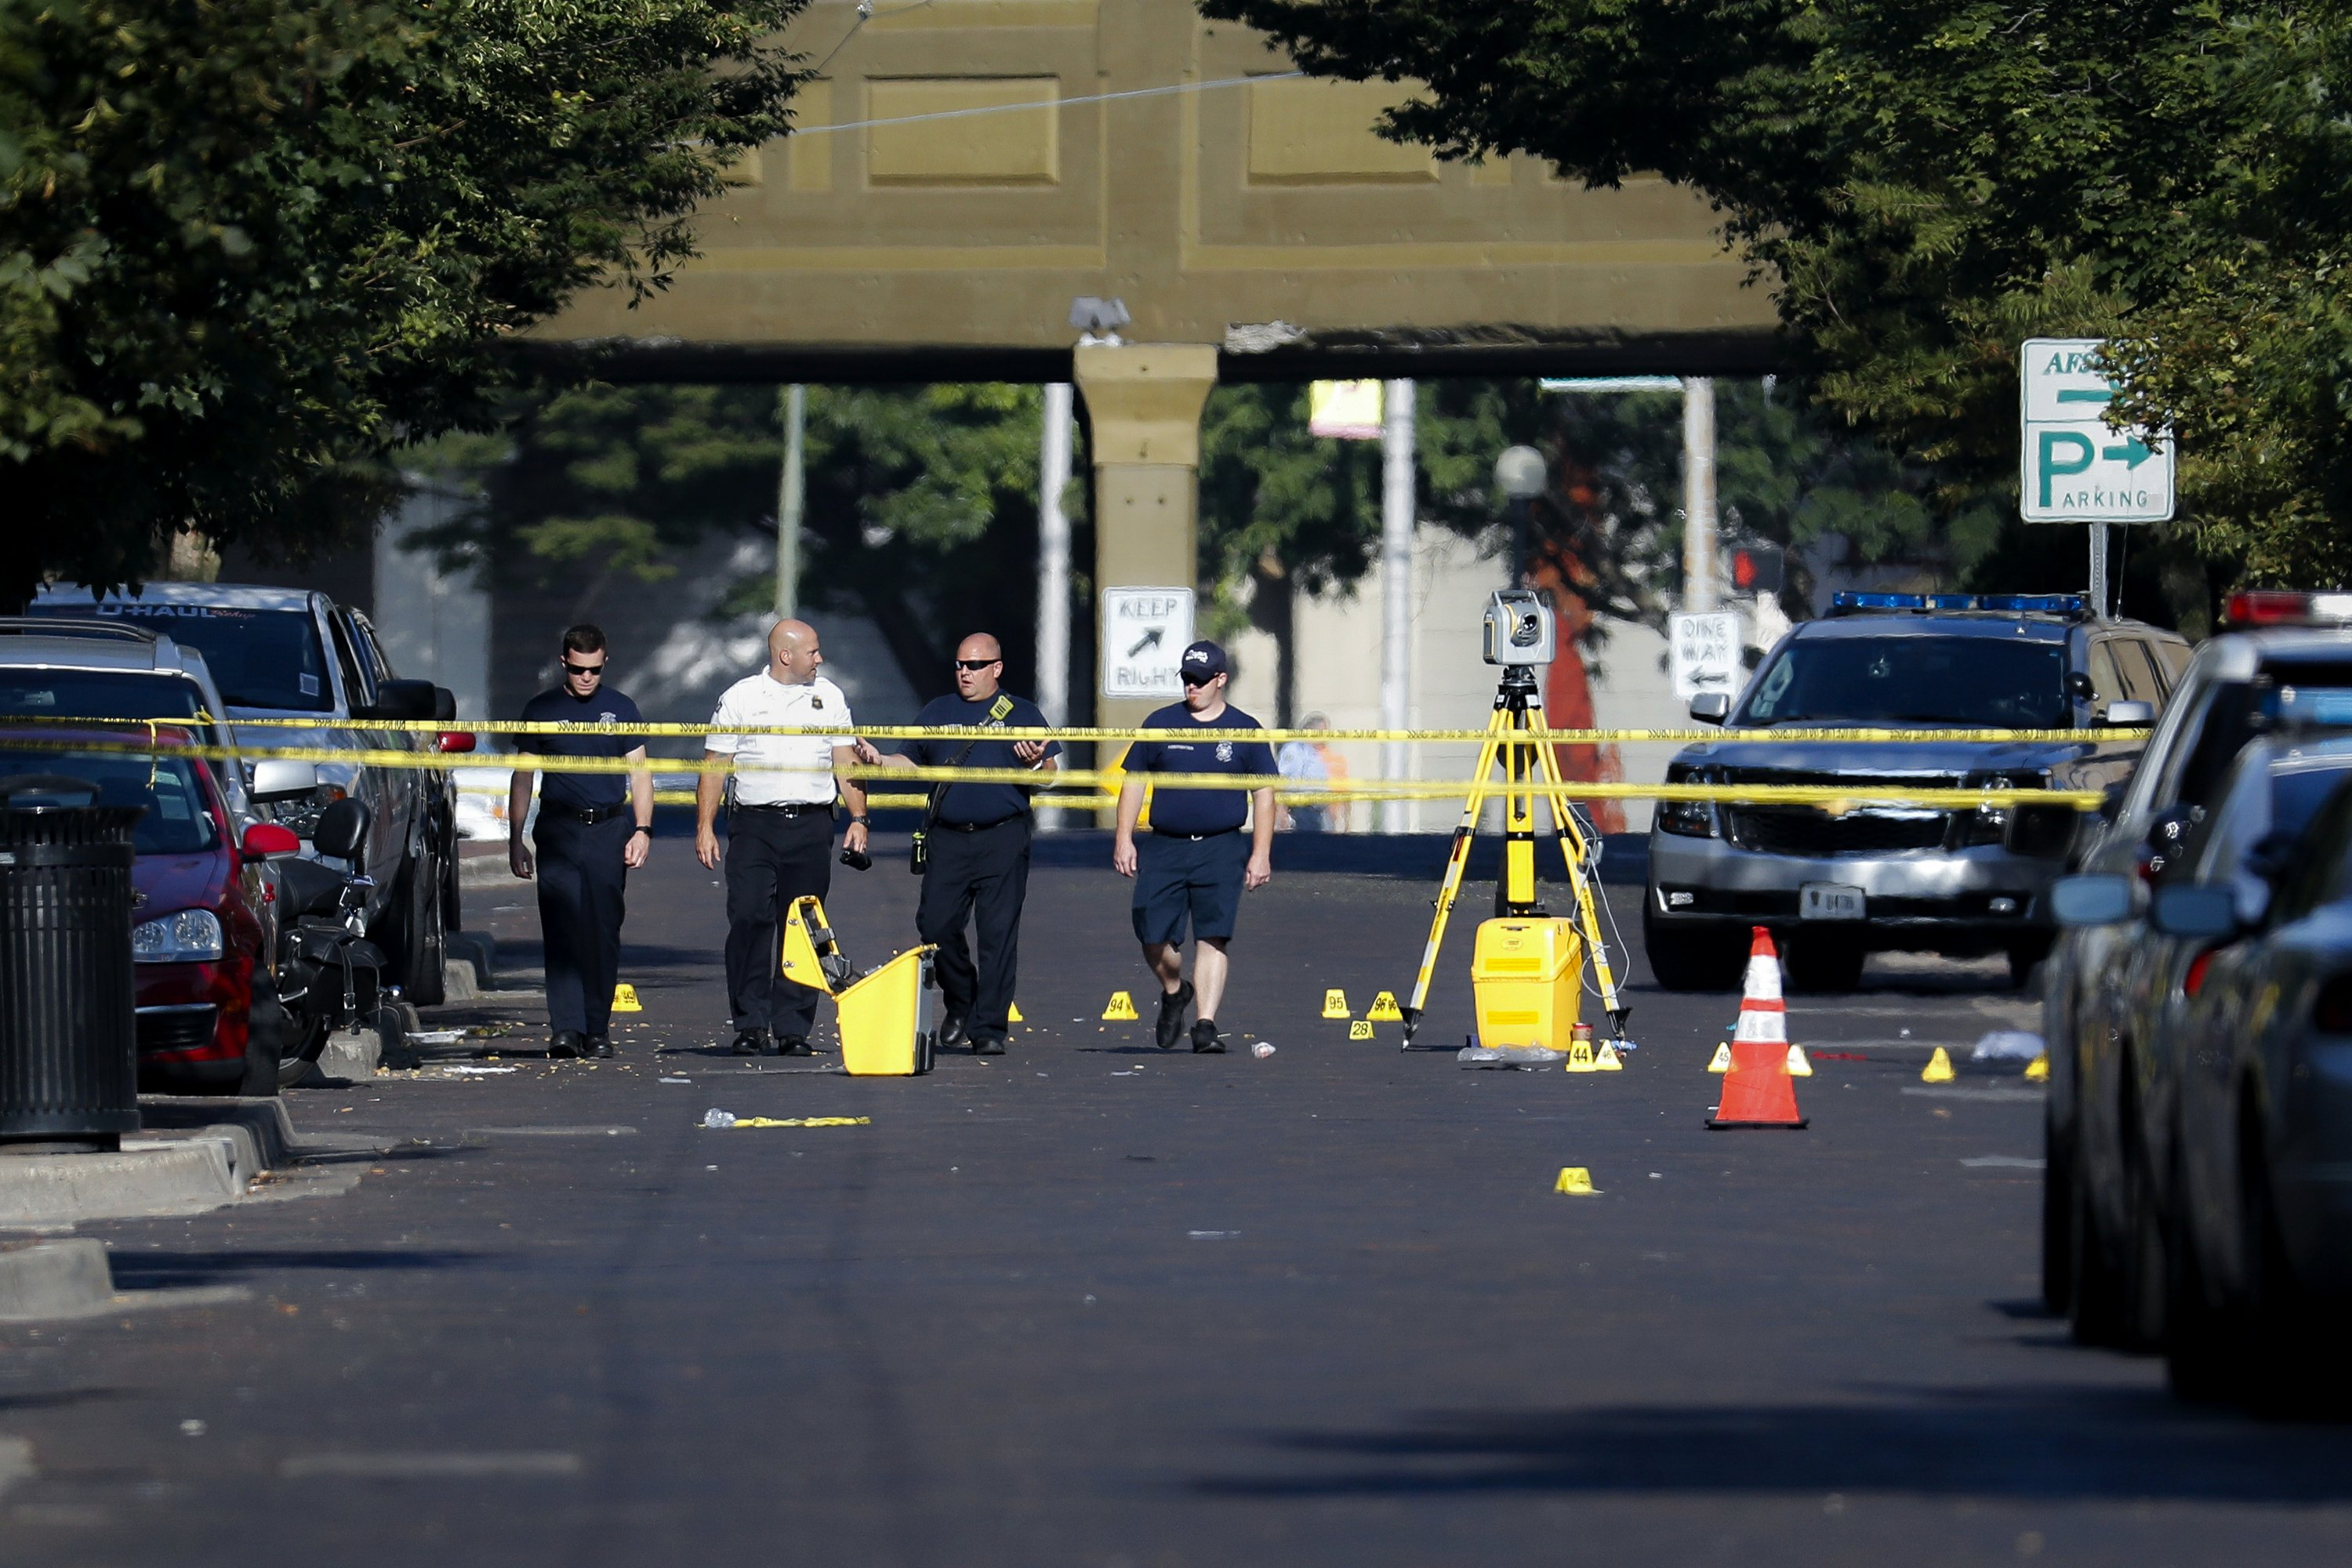 The Latest: Senator says prayers not enough after shooting